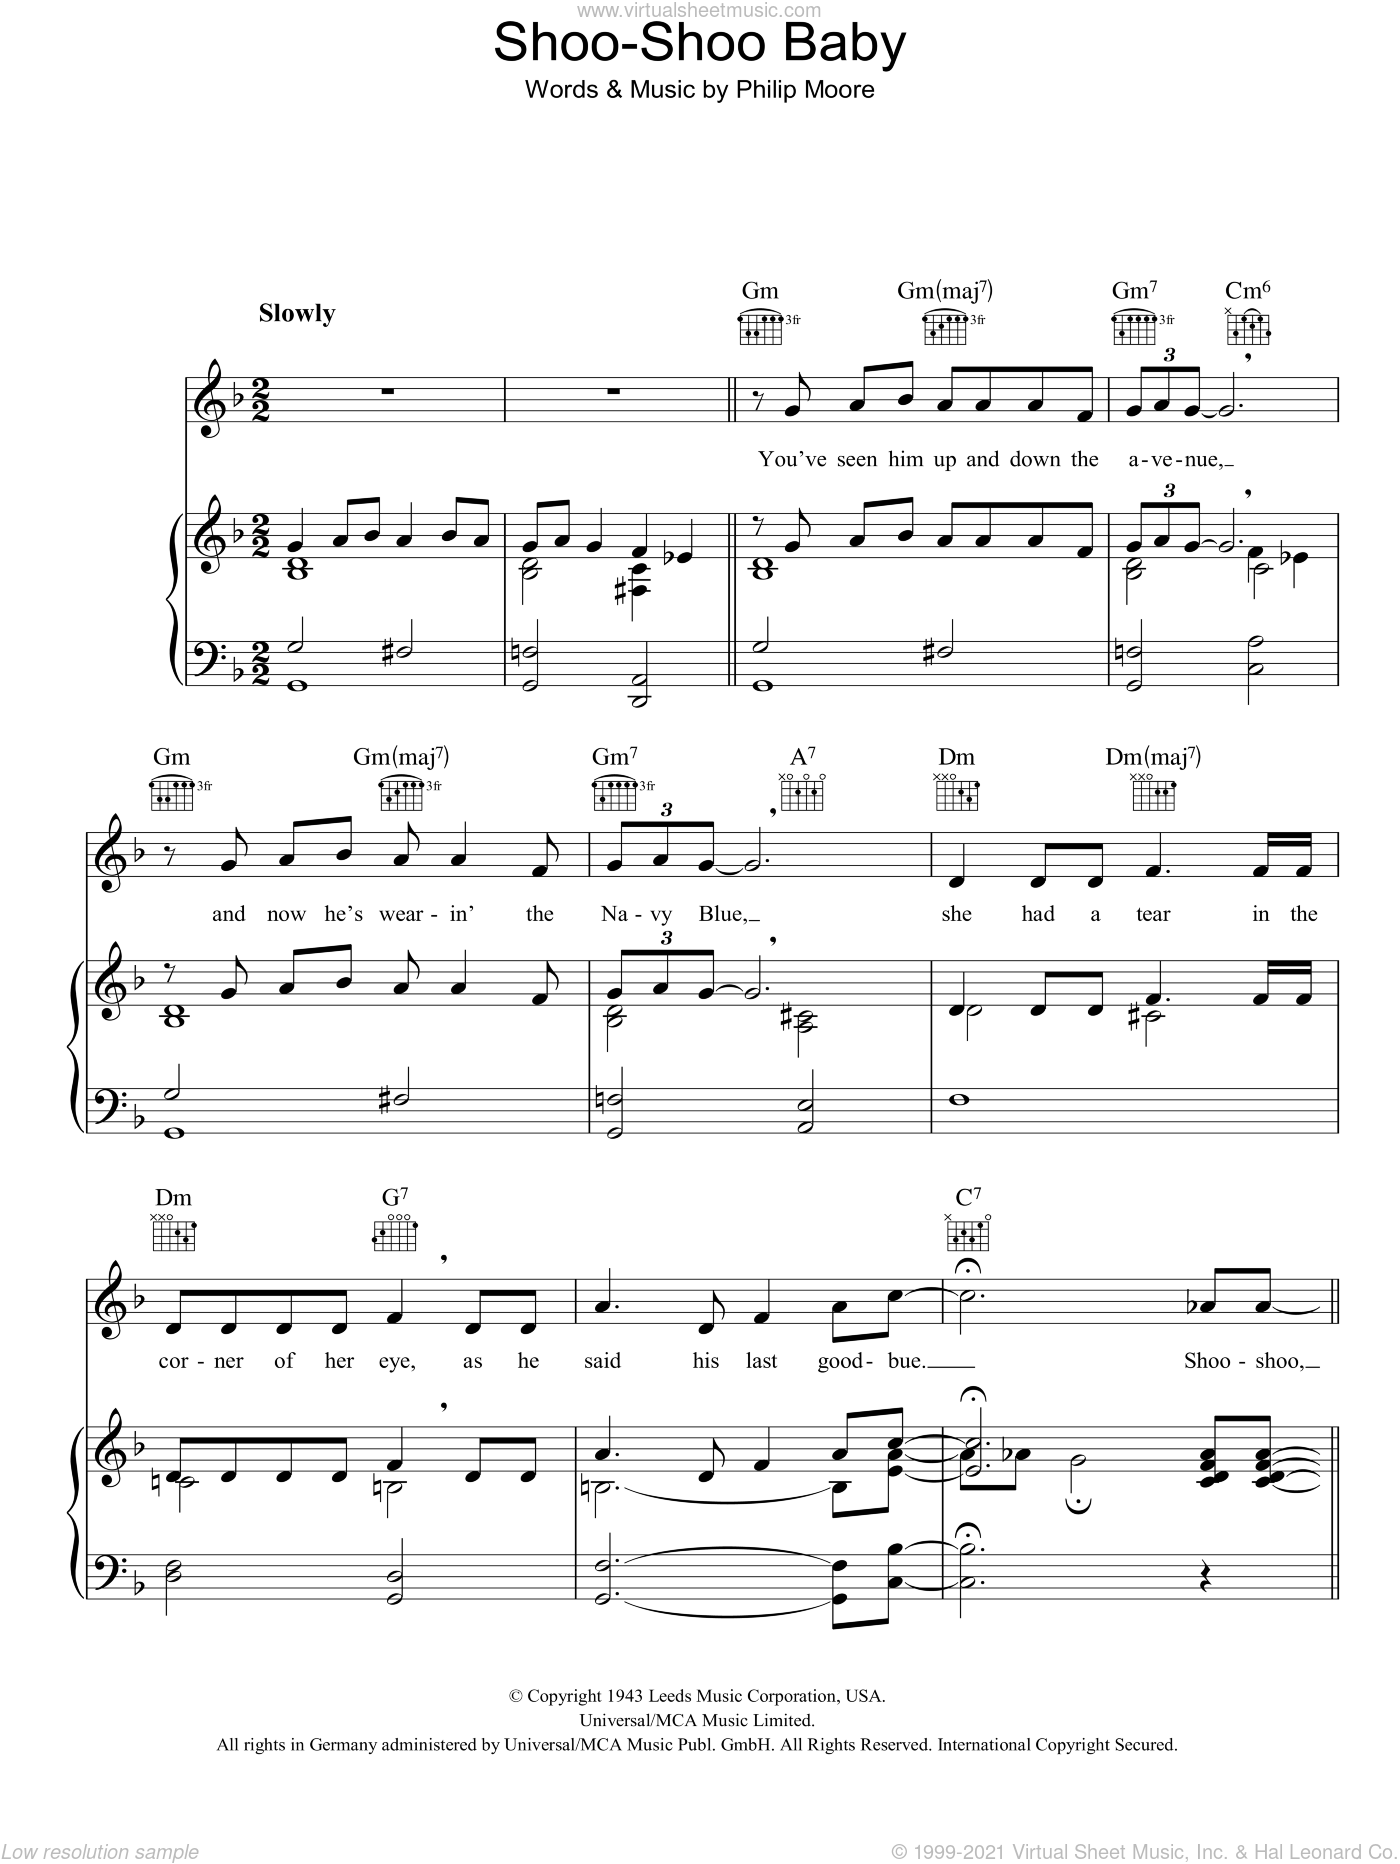 Shoo-Shoo Baby sheet music for voice, piano or guitar by Philip Moore. Score Image Preview.